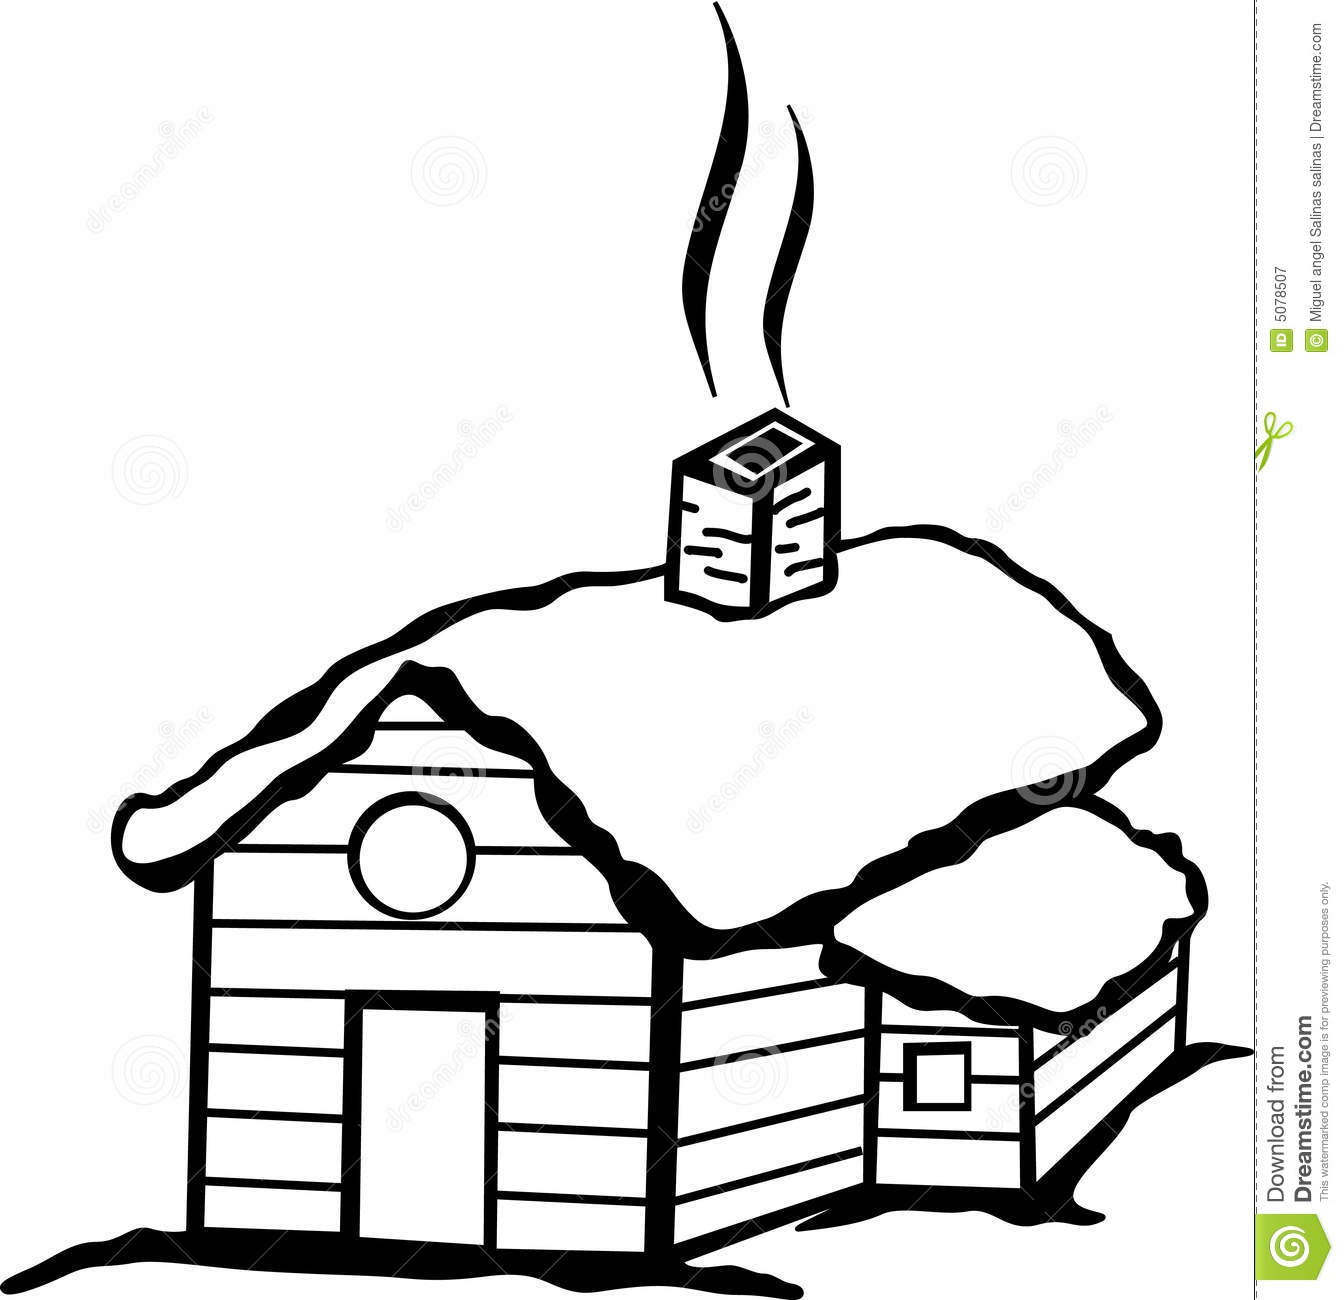 Cabin With Snow Vector Illustration Royalty Free Stock